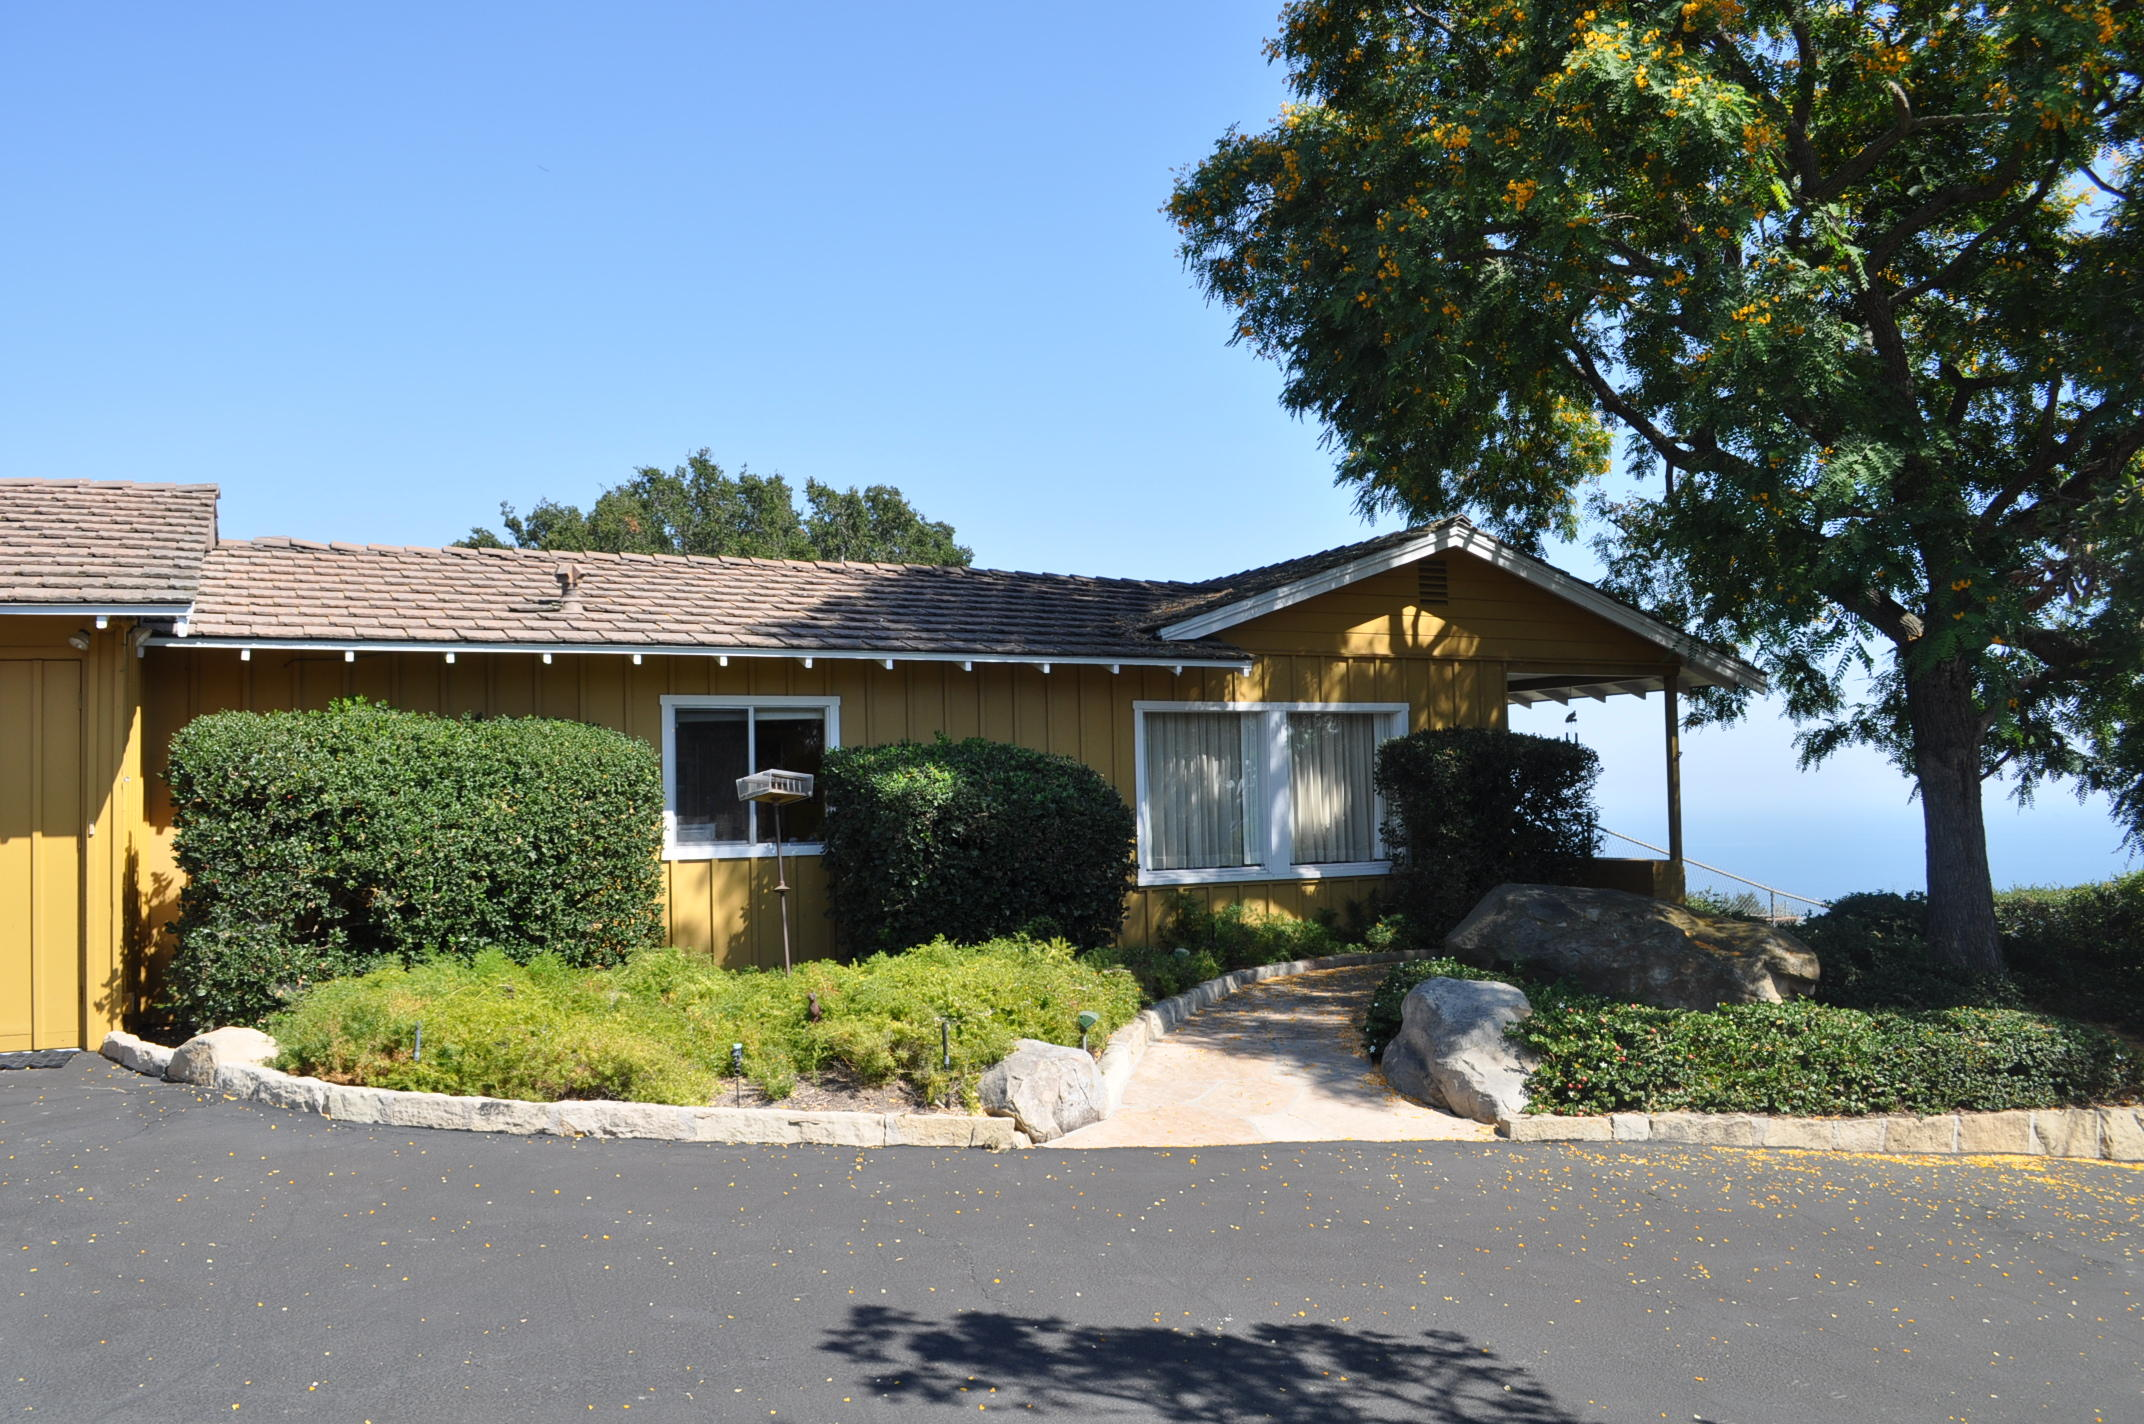 Property photo for 1666 Franceschi Rd Santa Barbara, California 93103 - 16-2934